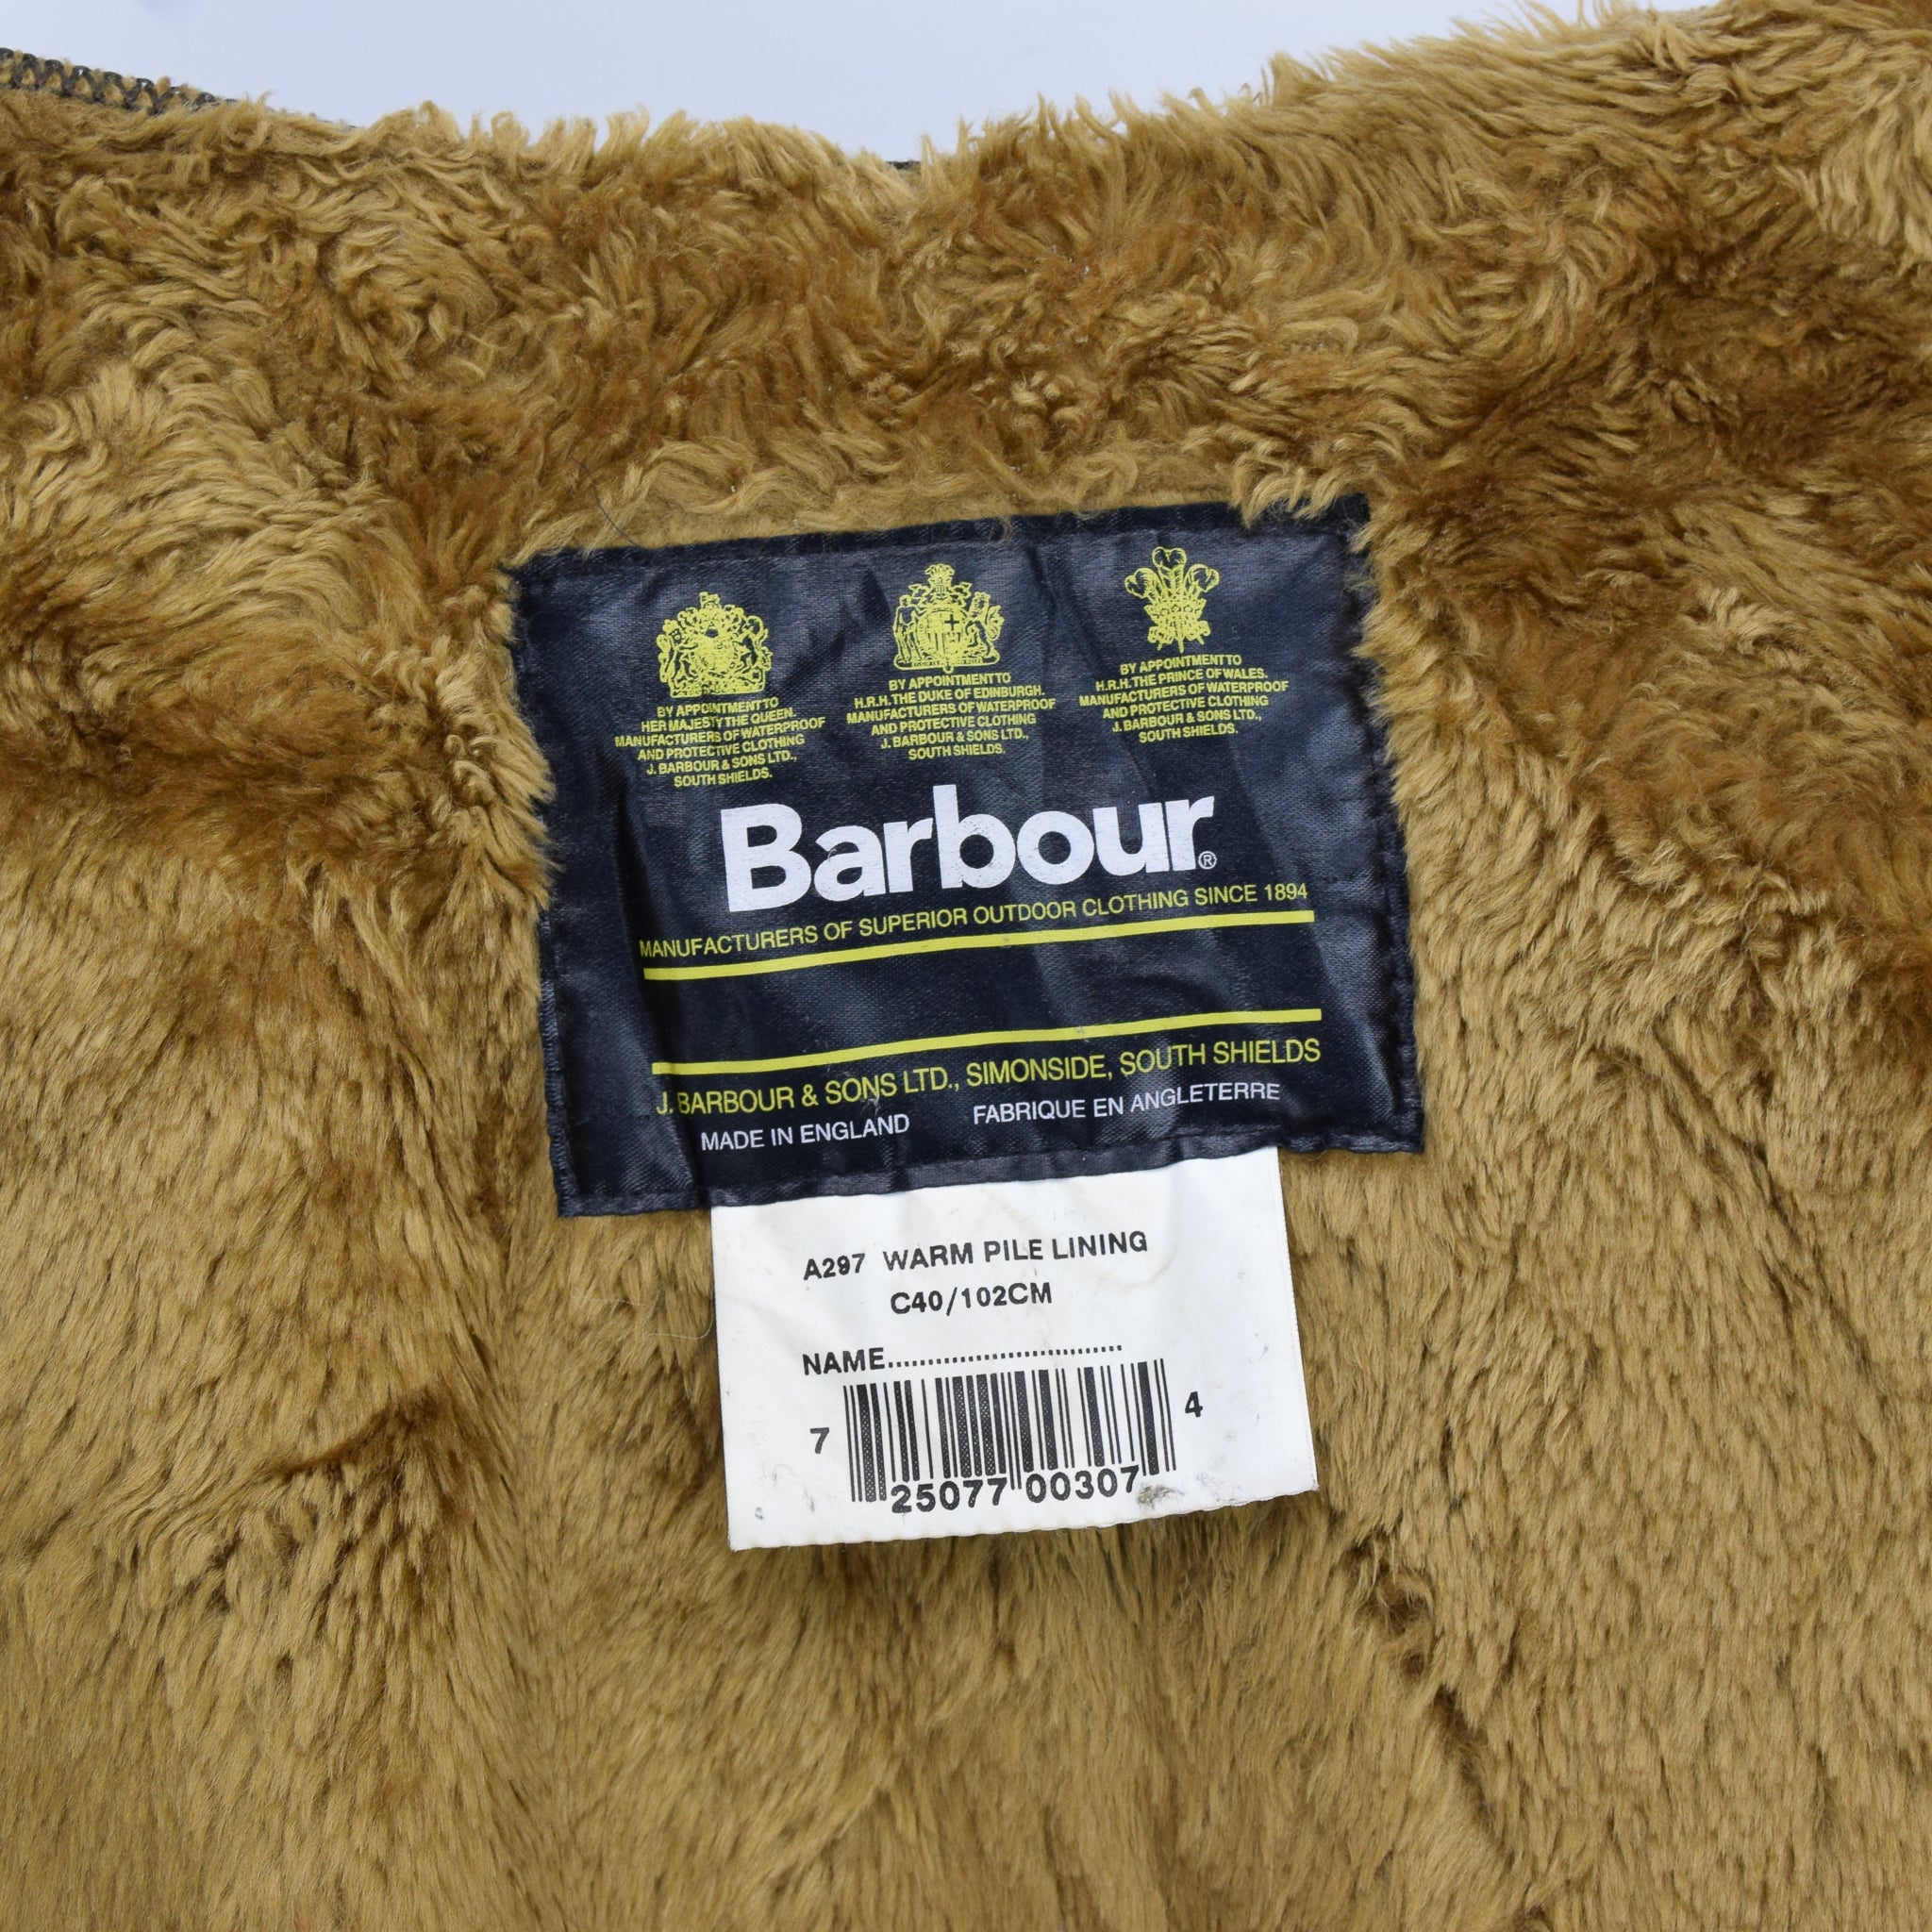 Vintage Barbour A297 Warm Pile Lining Faux Fur Liner Made In England C40 / 102cm label